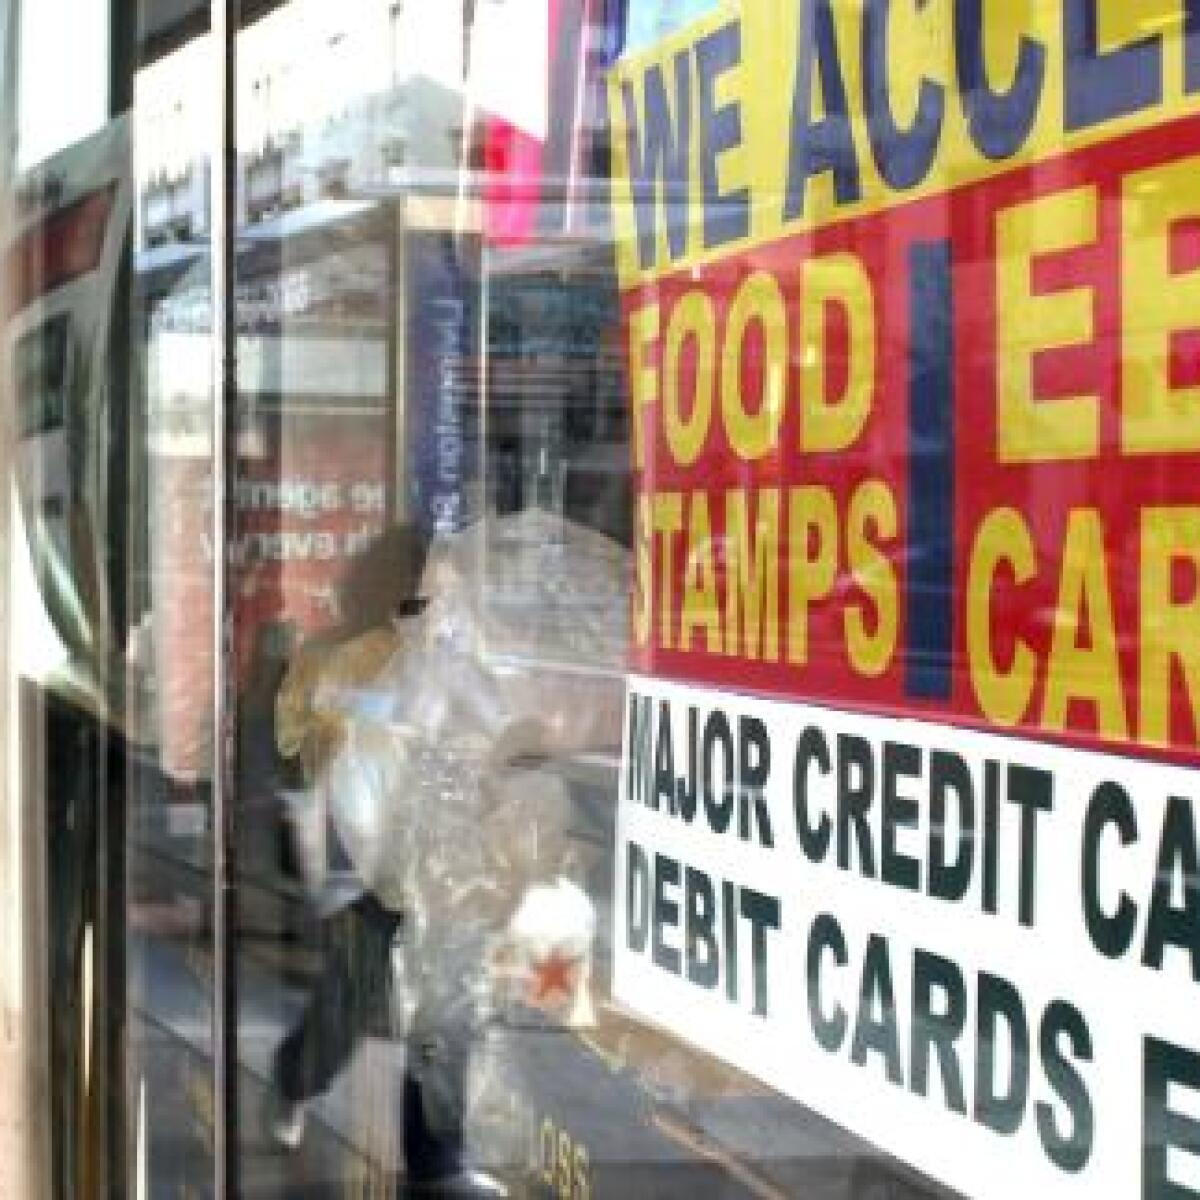 More People May Have To Work Harder For Food Stamps